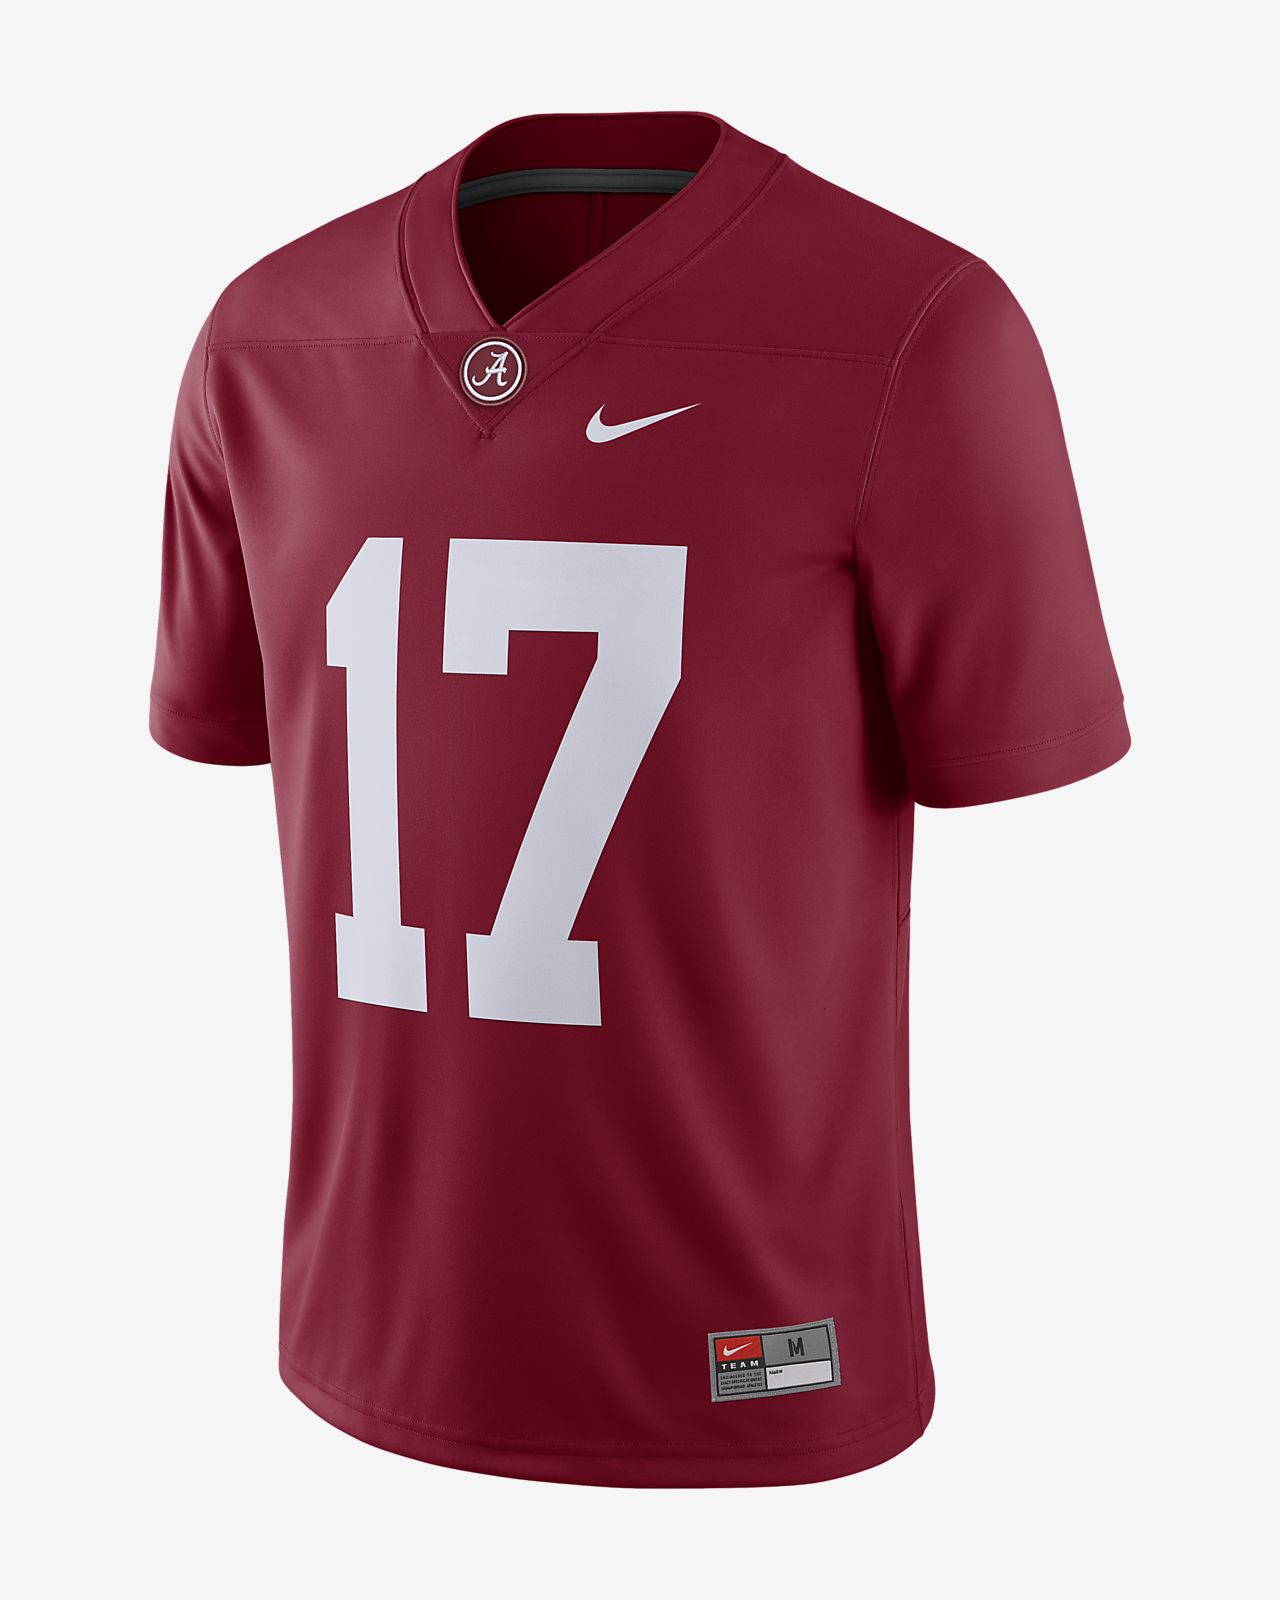 Nike College Game (Alabama) Men's Football Jersey